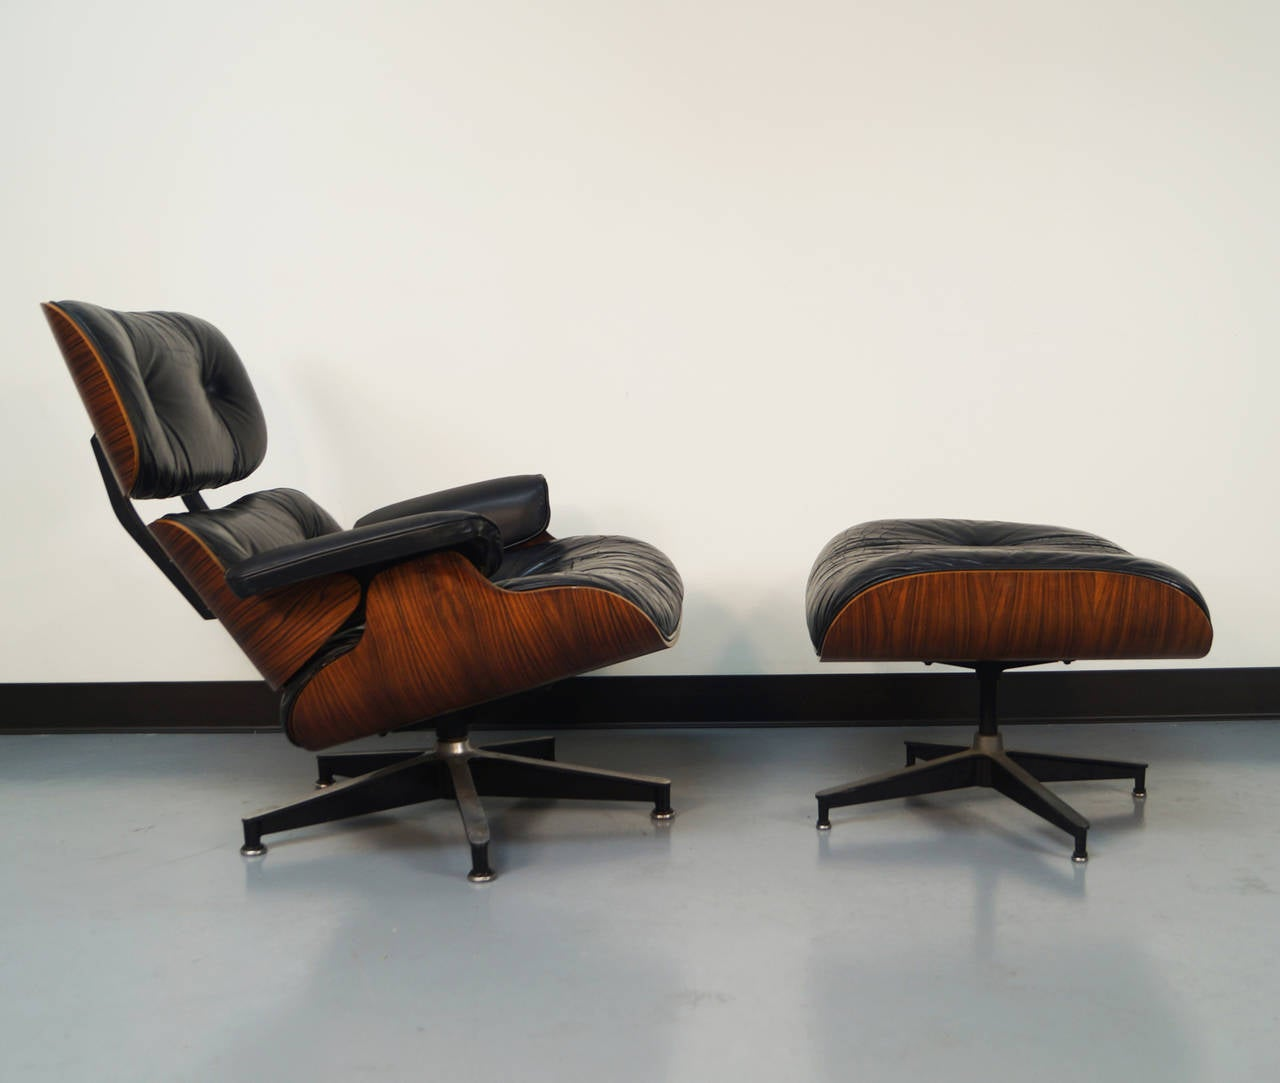 Rosewood charles eames lounge chair and ottoman for herman miller at 1stdibs - Herman miller chair eames ...